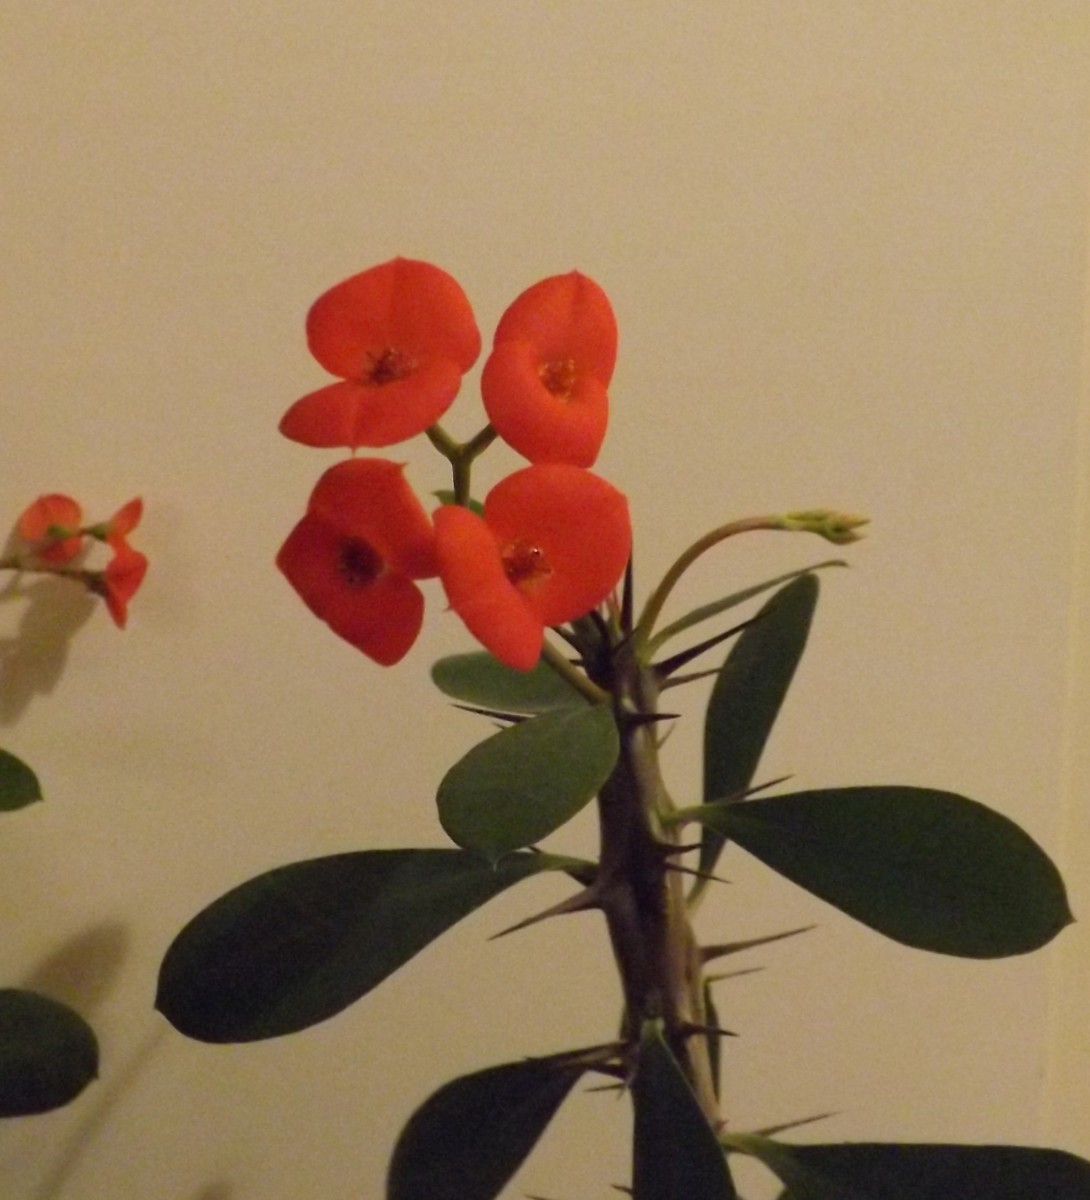 crown-of-thorns-plant